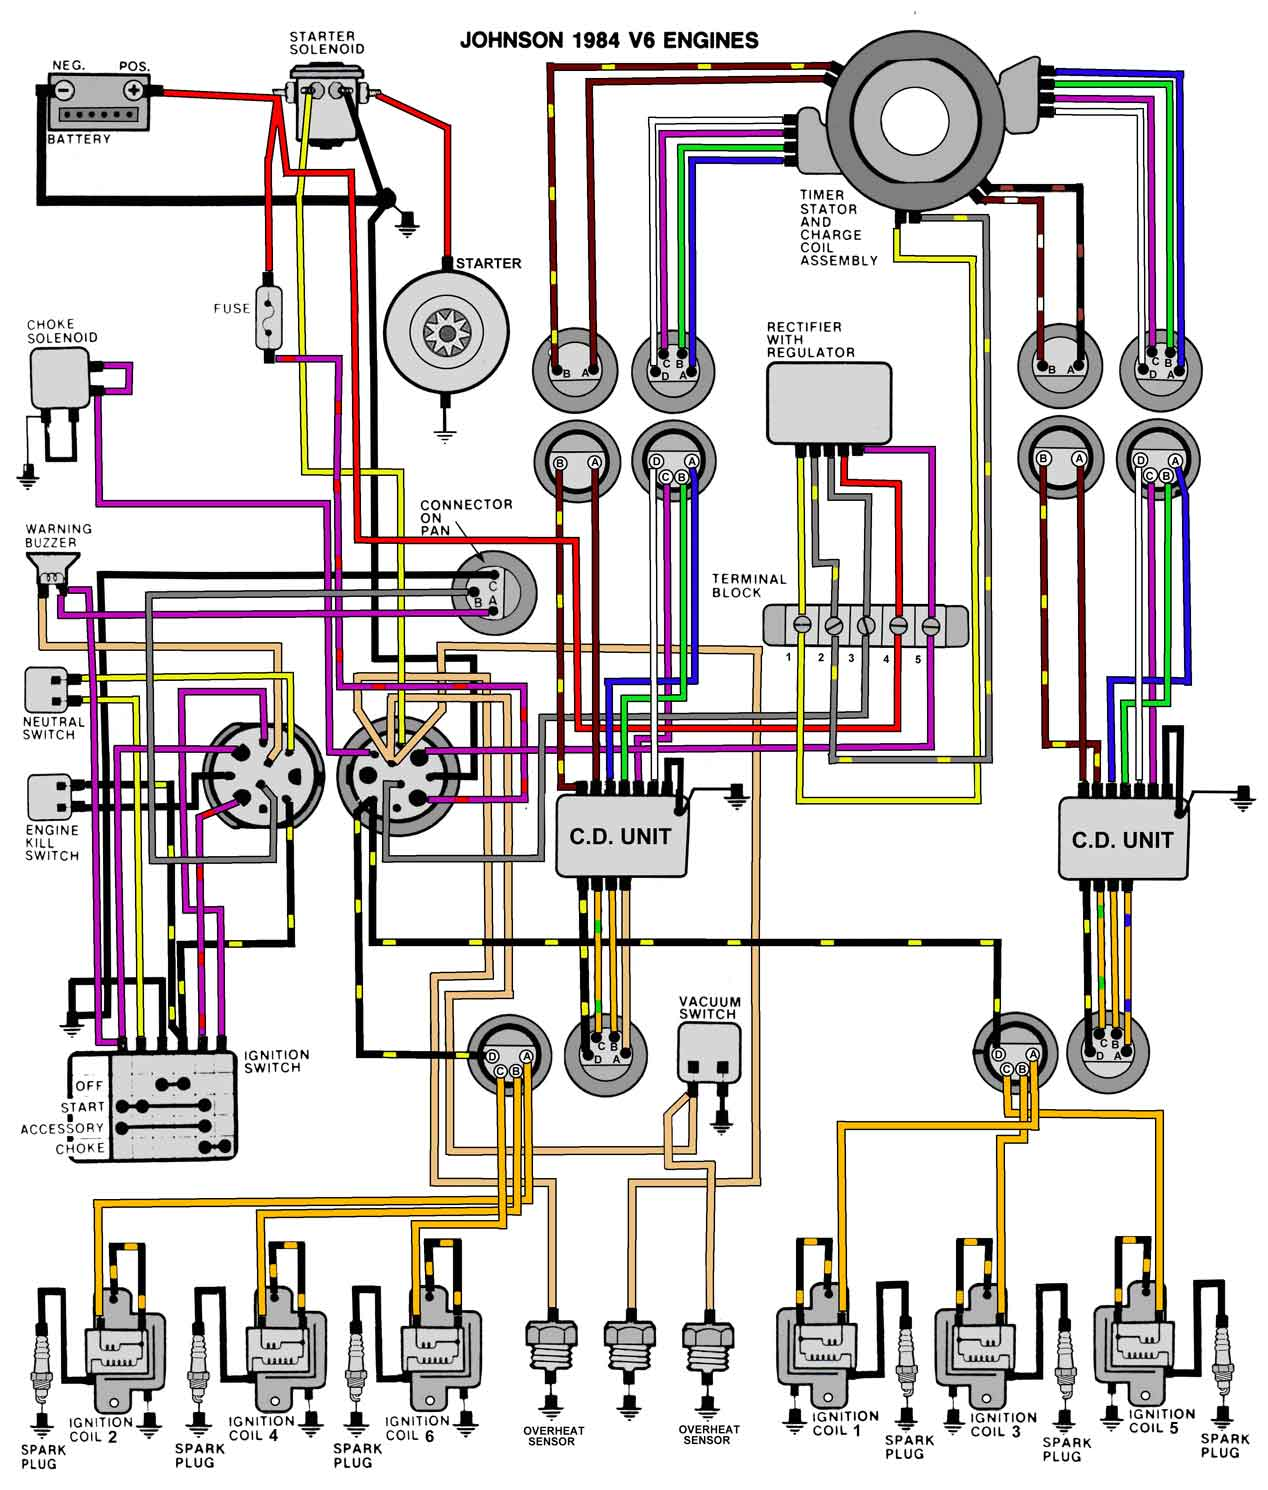 84_V6 mastertech marine evinrude johnson outboard wiring diagrams mercury 850 wiring diagram at honlapkeszites.co